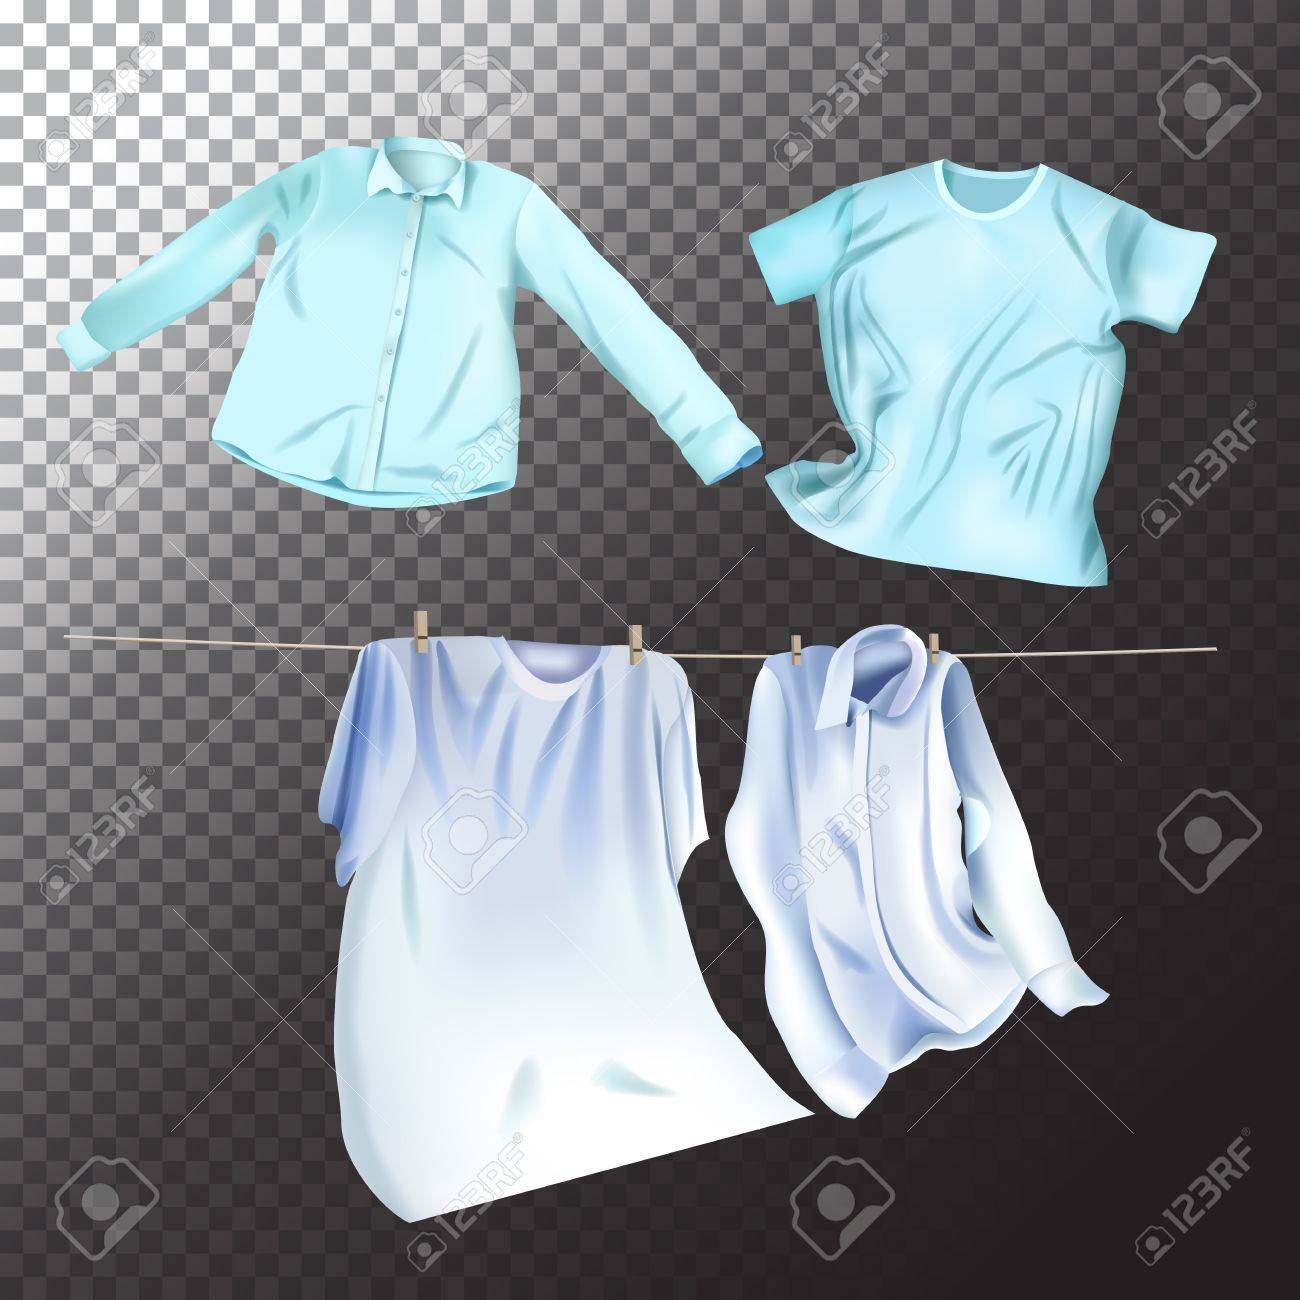 Set of realistic clean laundry clothes. Vector isolated clothes objects on transparent background - 81232352